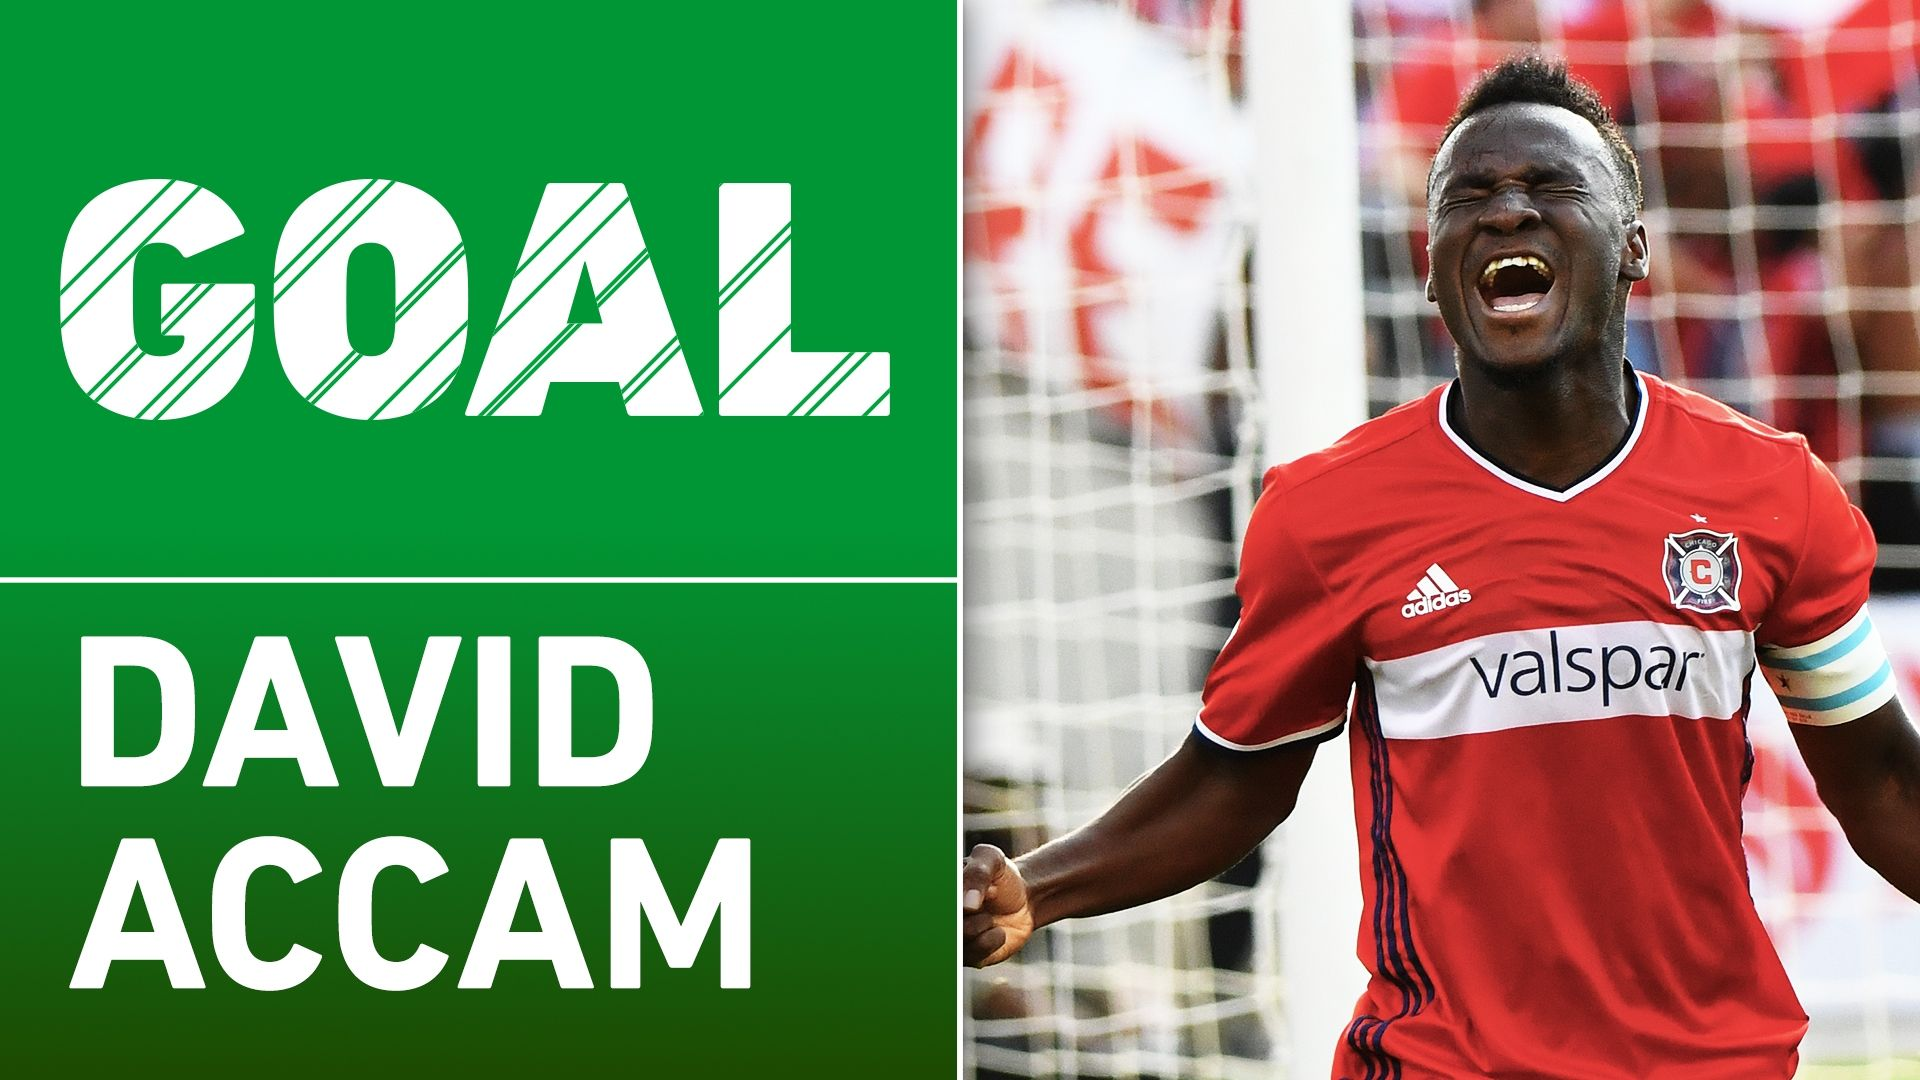 Video via MLS: Accam races to score